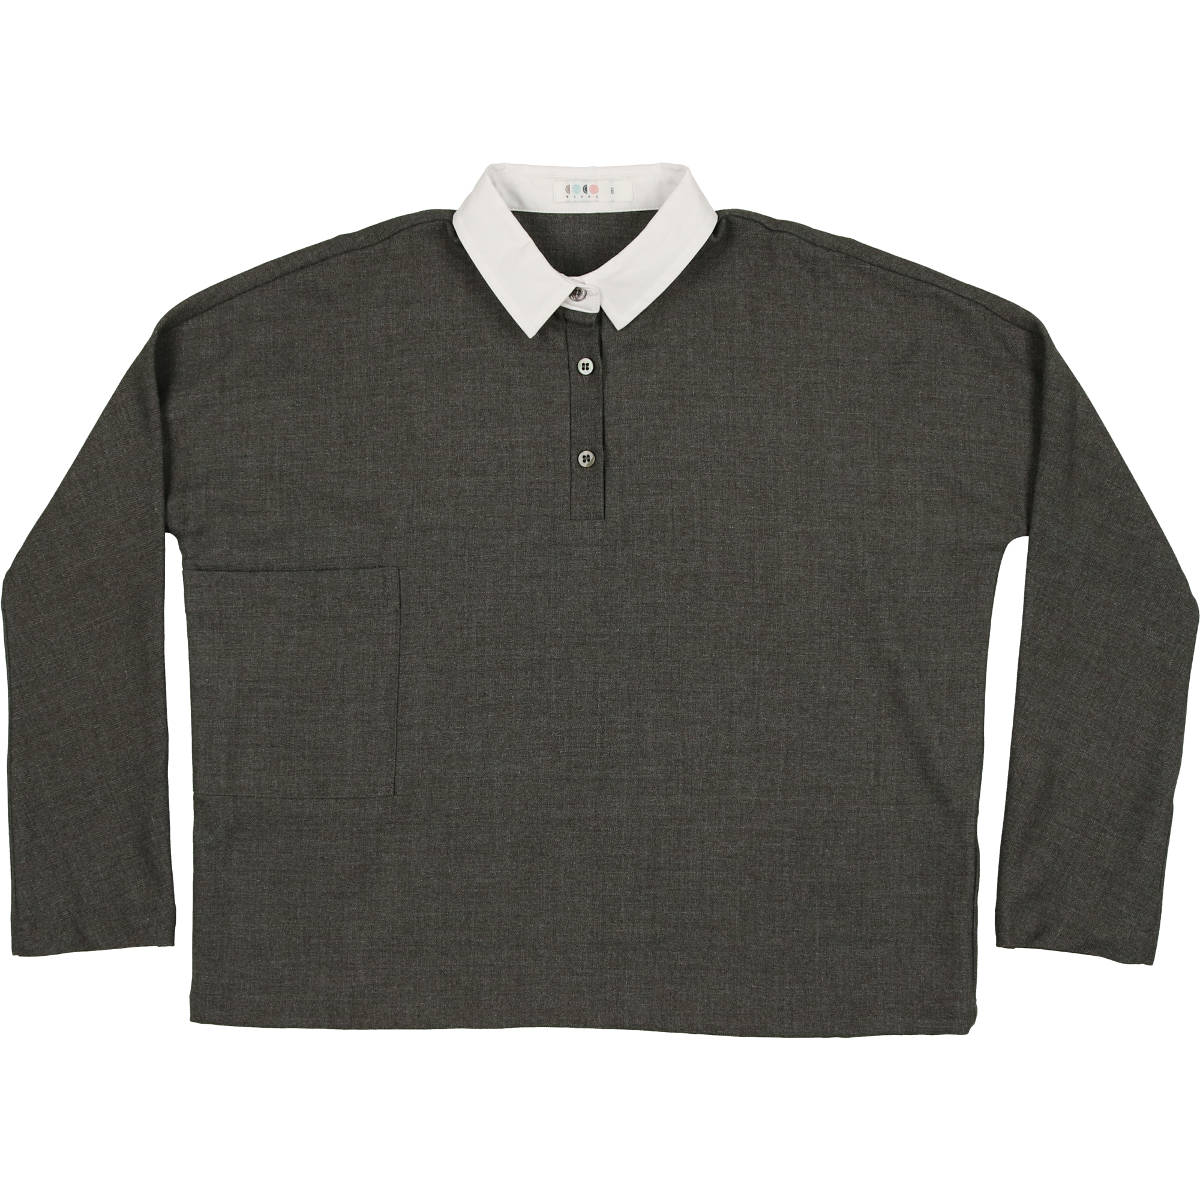 Coco Blanc Grey Heathered Wool Shirt